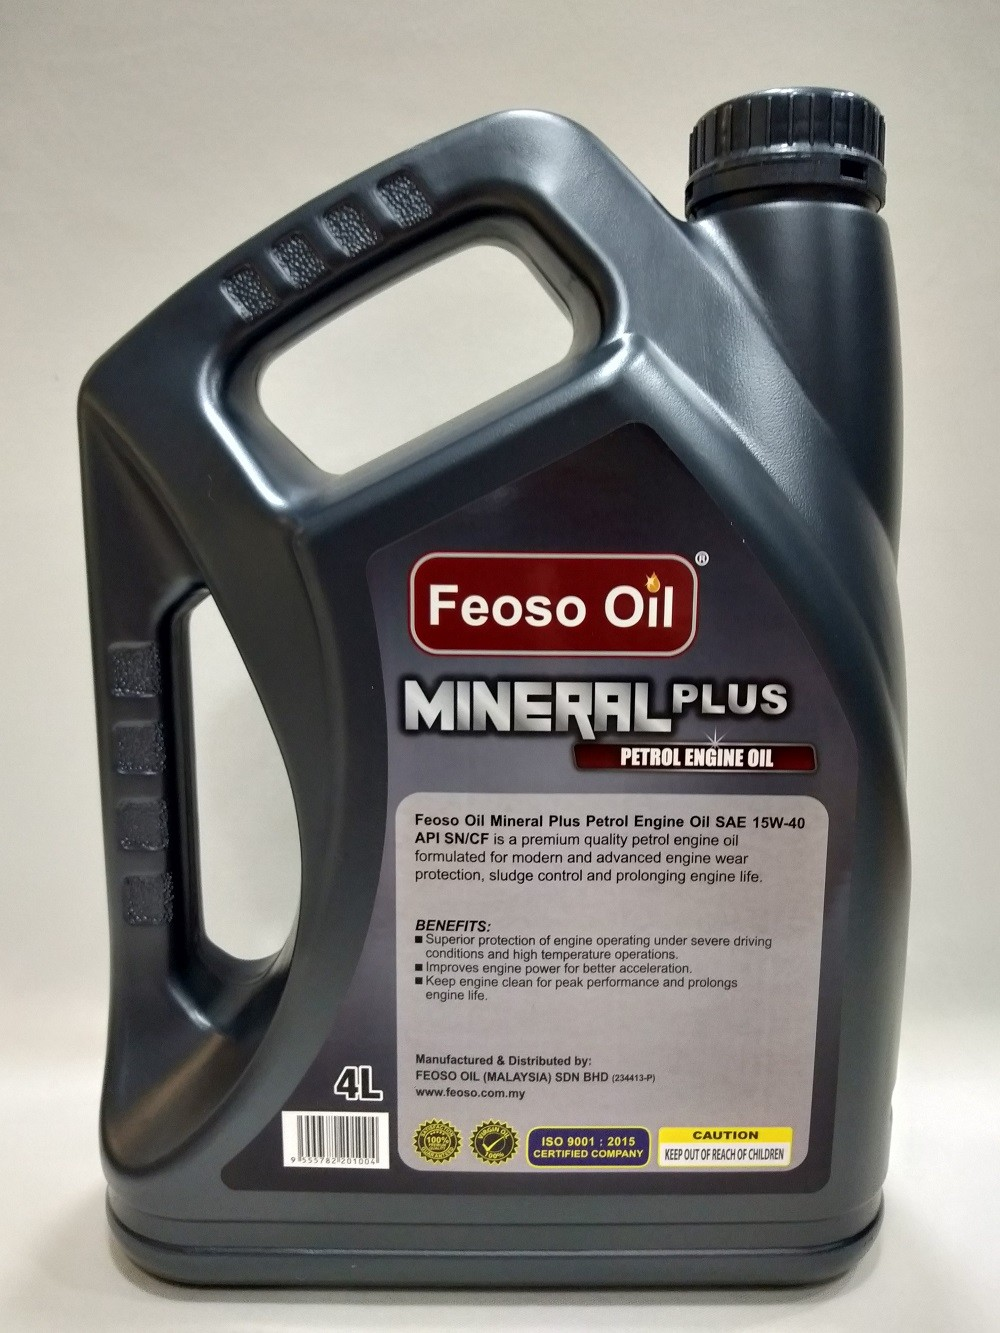 Oem Sae 15w-40 Api Sn/cf Mineral Plus - Buy Engine Oil.Mineral Plus.15w-40 Product on Alibaba.com